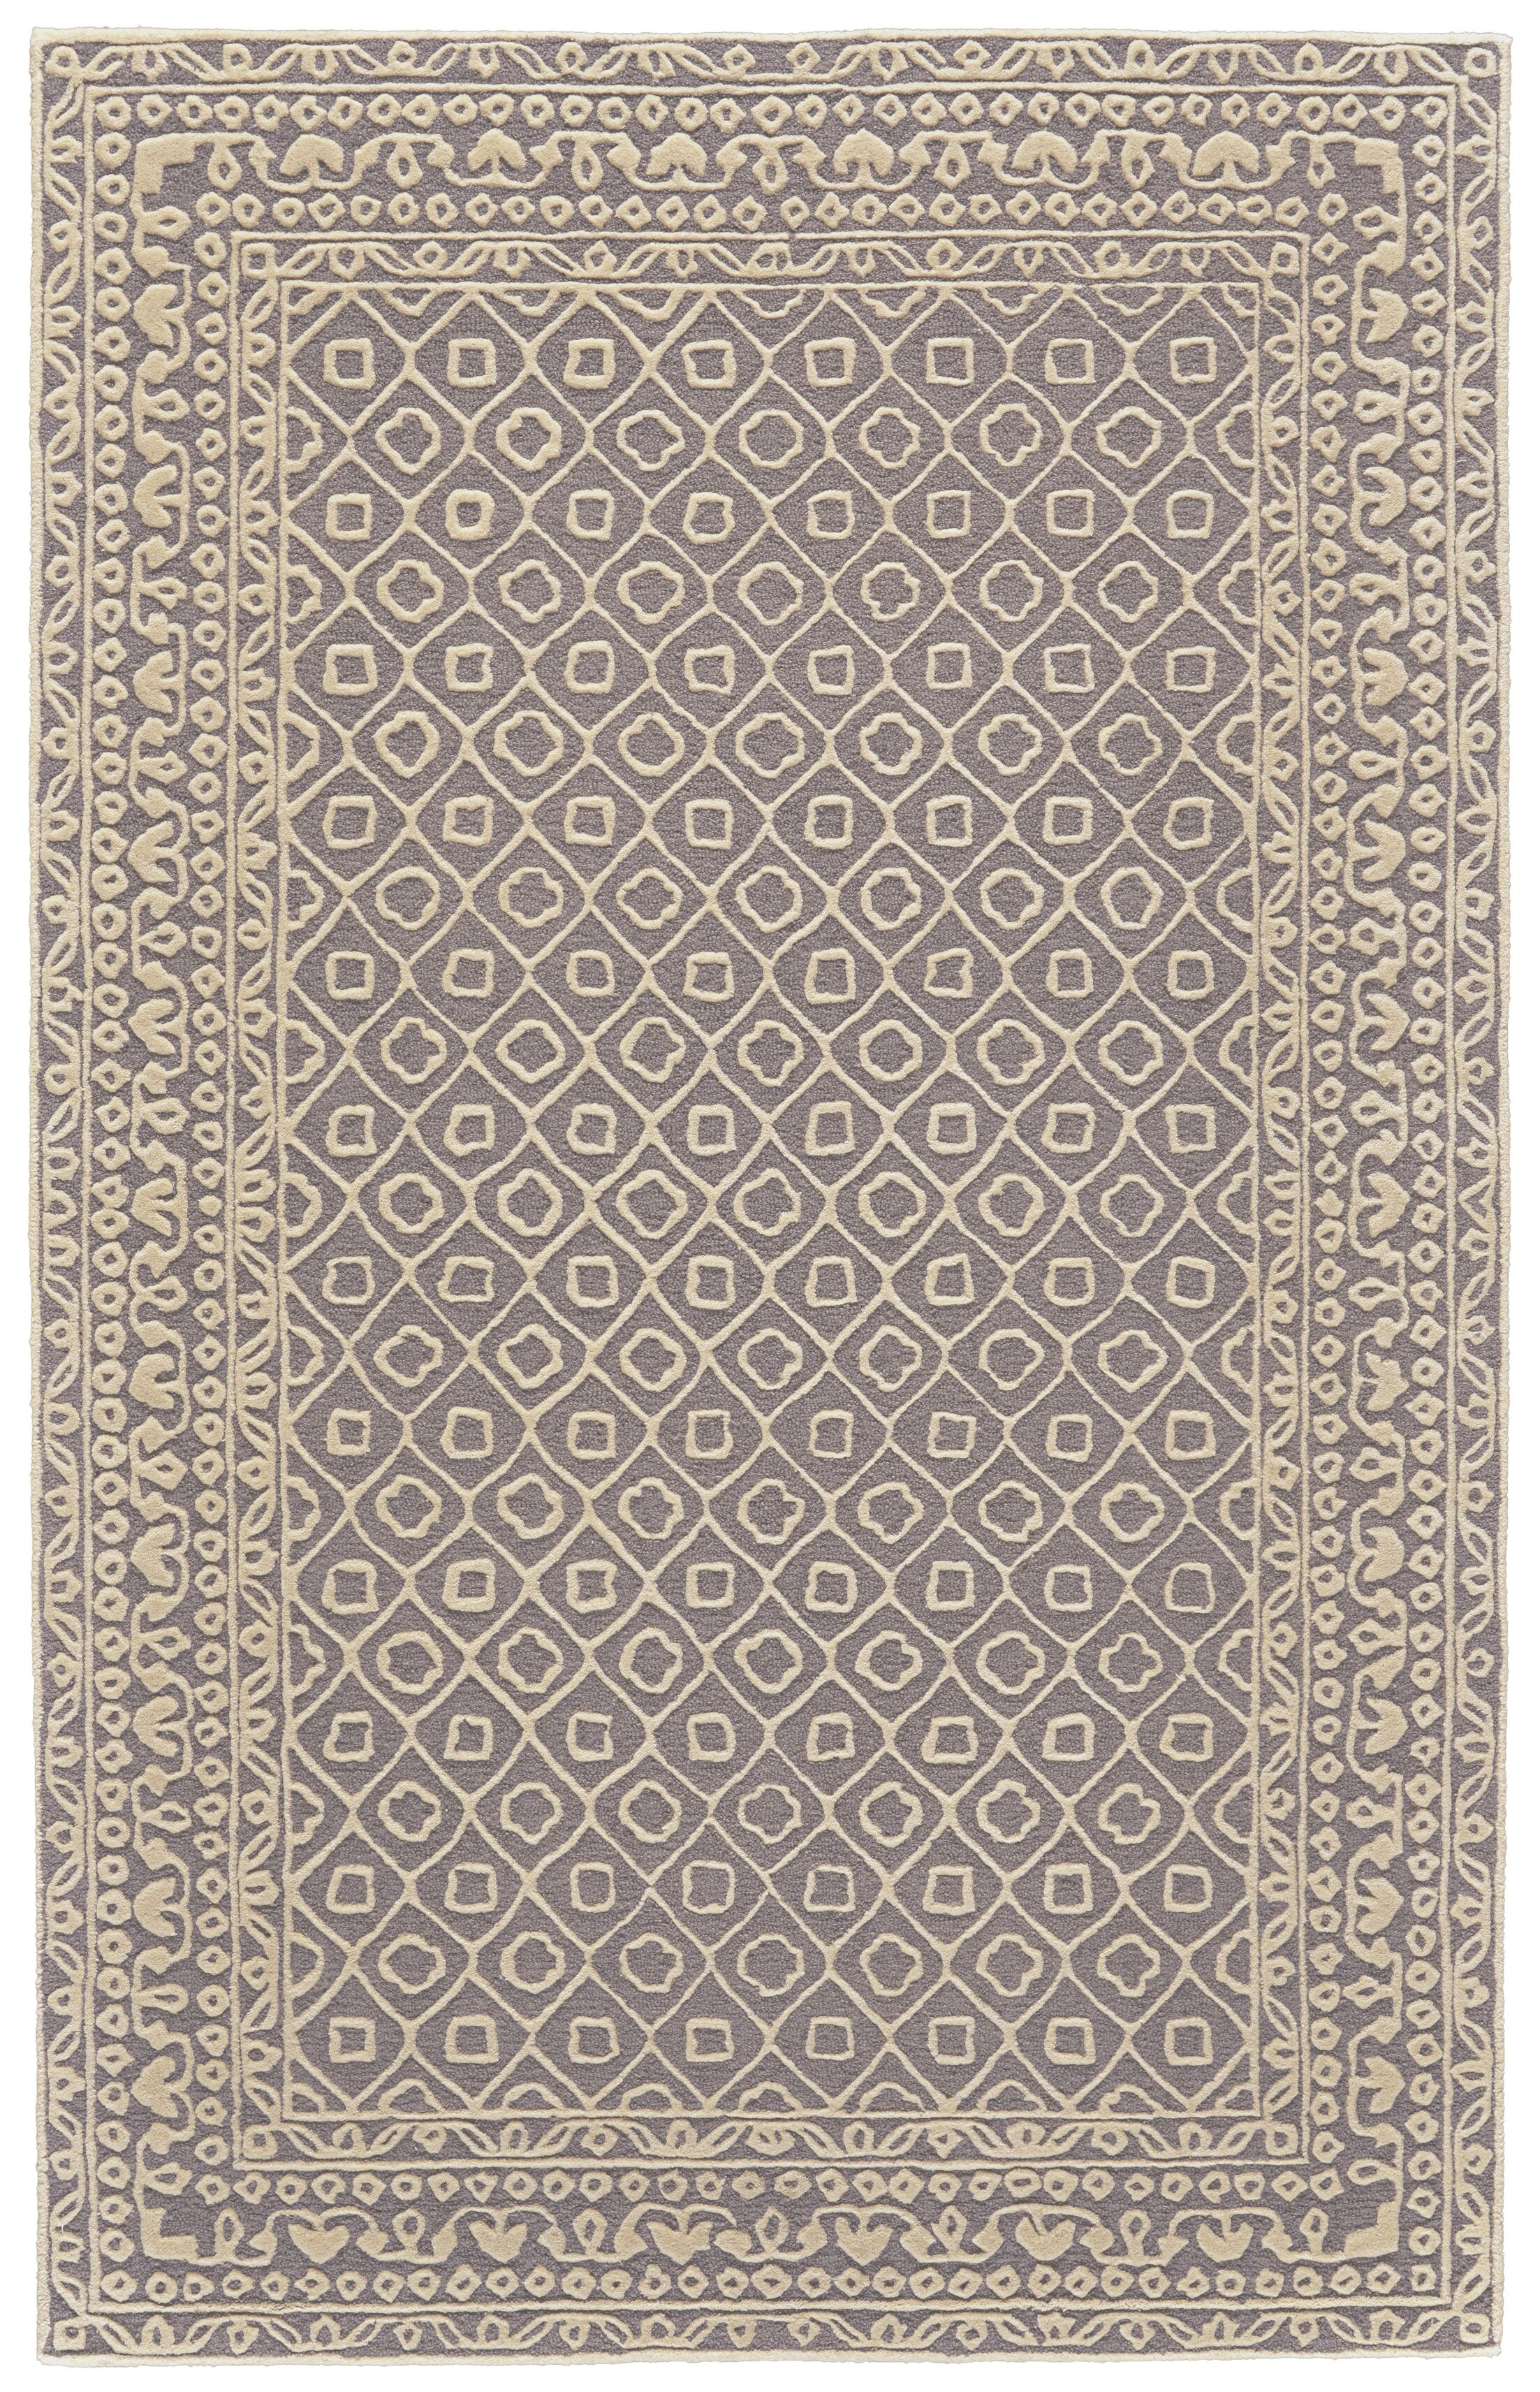 Griego Hand-Tufted Wool Dark Gray/Ivory Area Rug Rug Size: Rectangle 5' x 8'